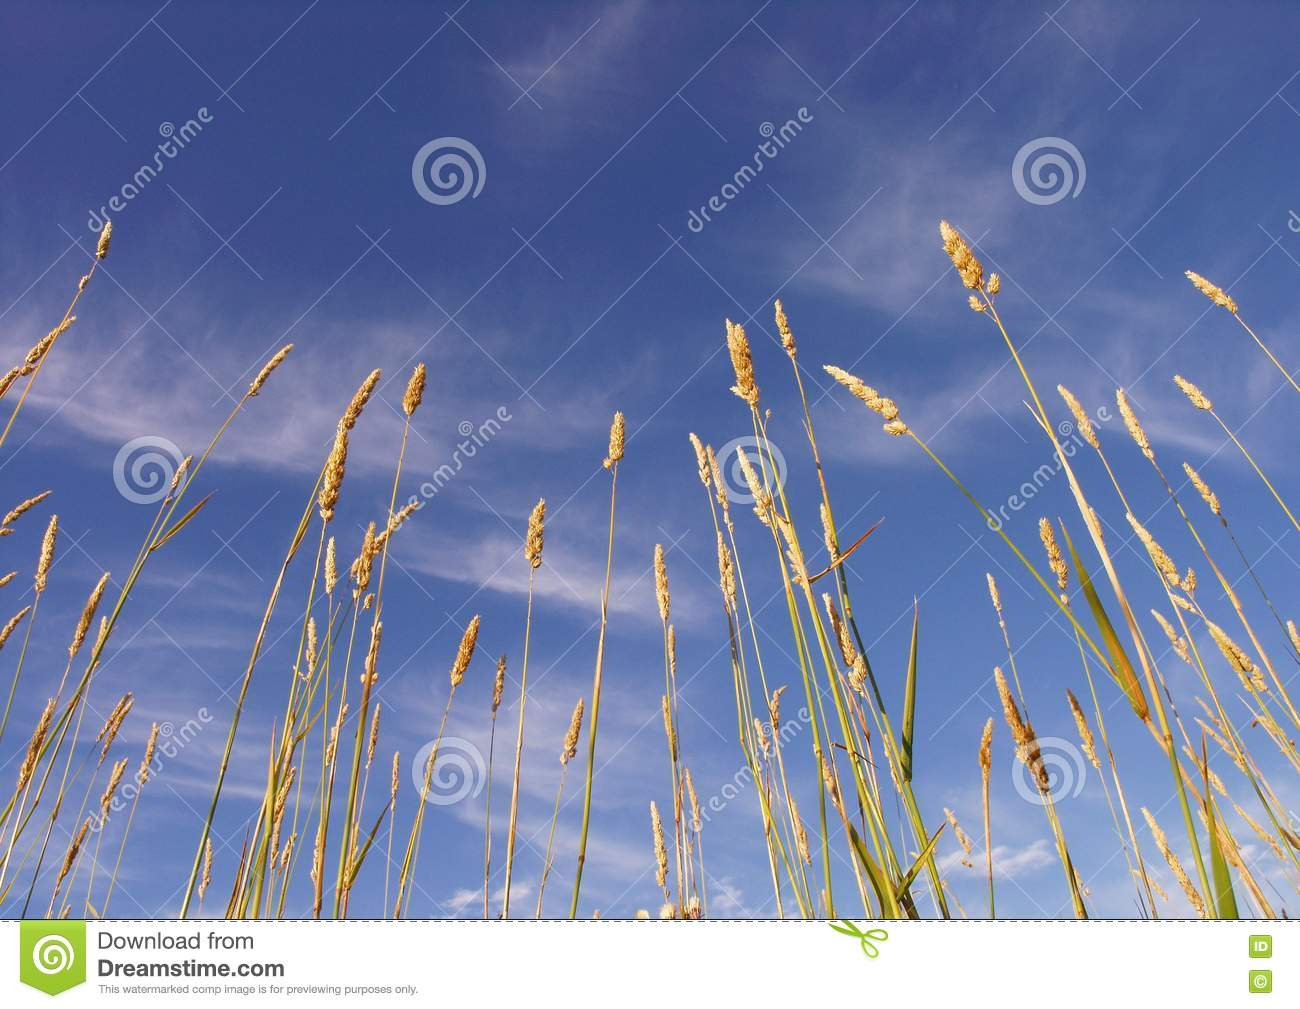 Stock Images  Grass And Sky Picture. Image  5983184 5462681297d